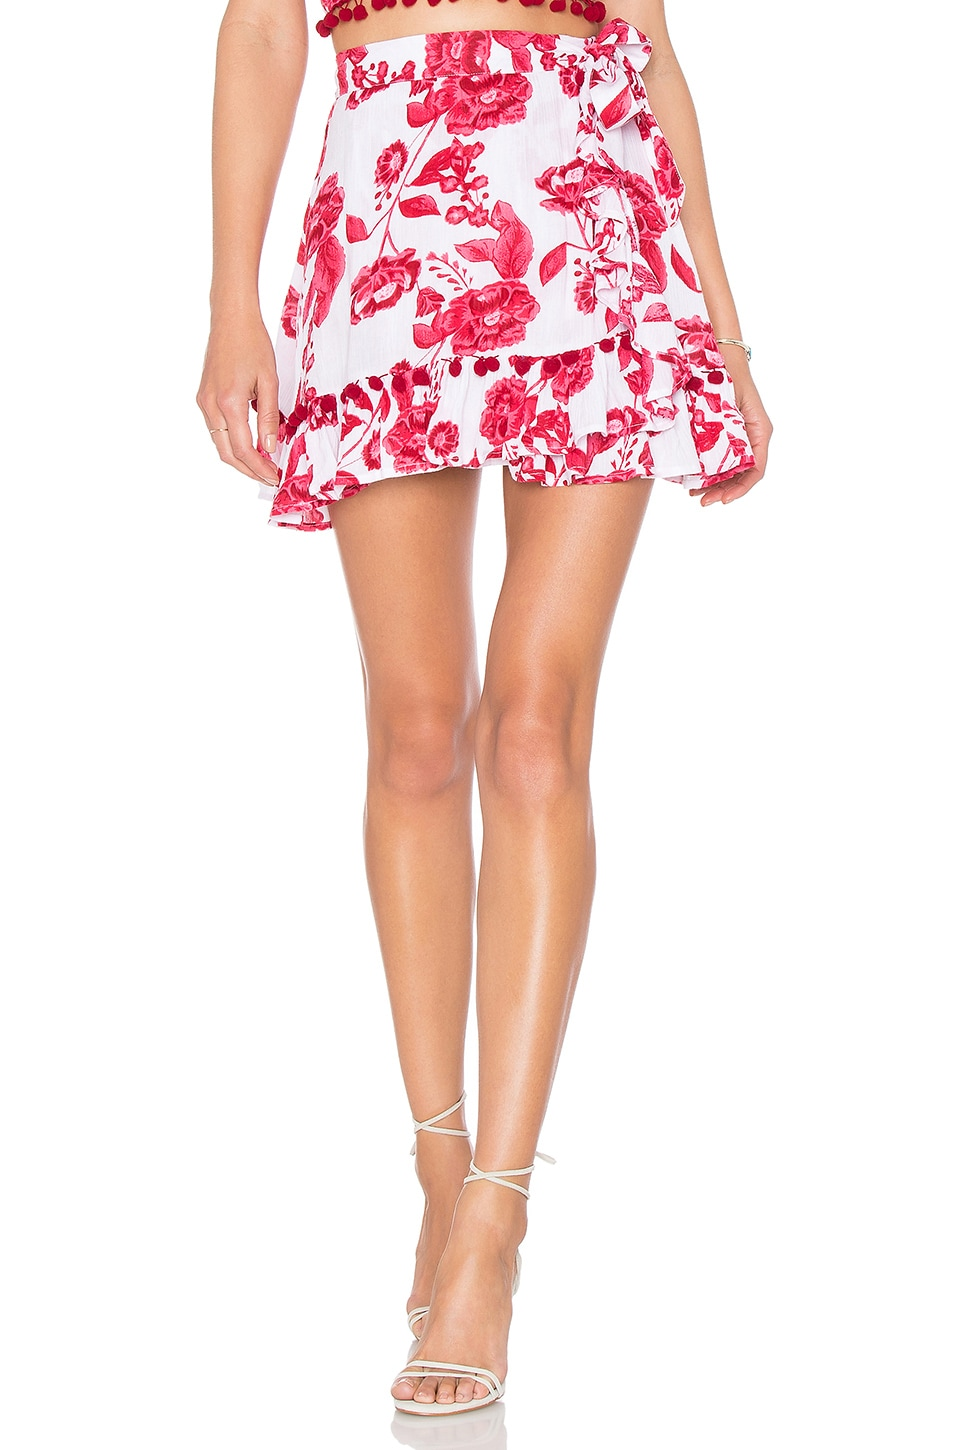 Lovers + Friends Alicia Skirt in Coral Poppy